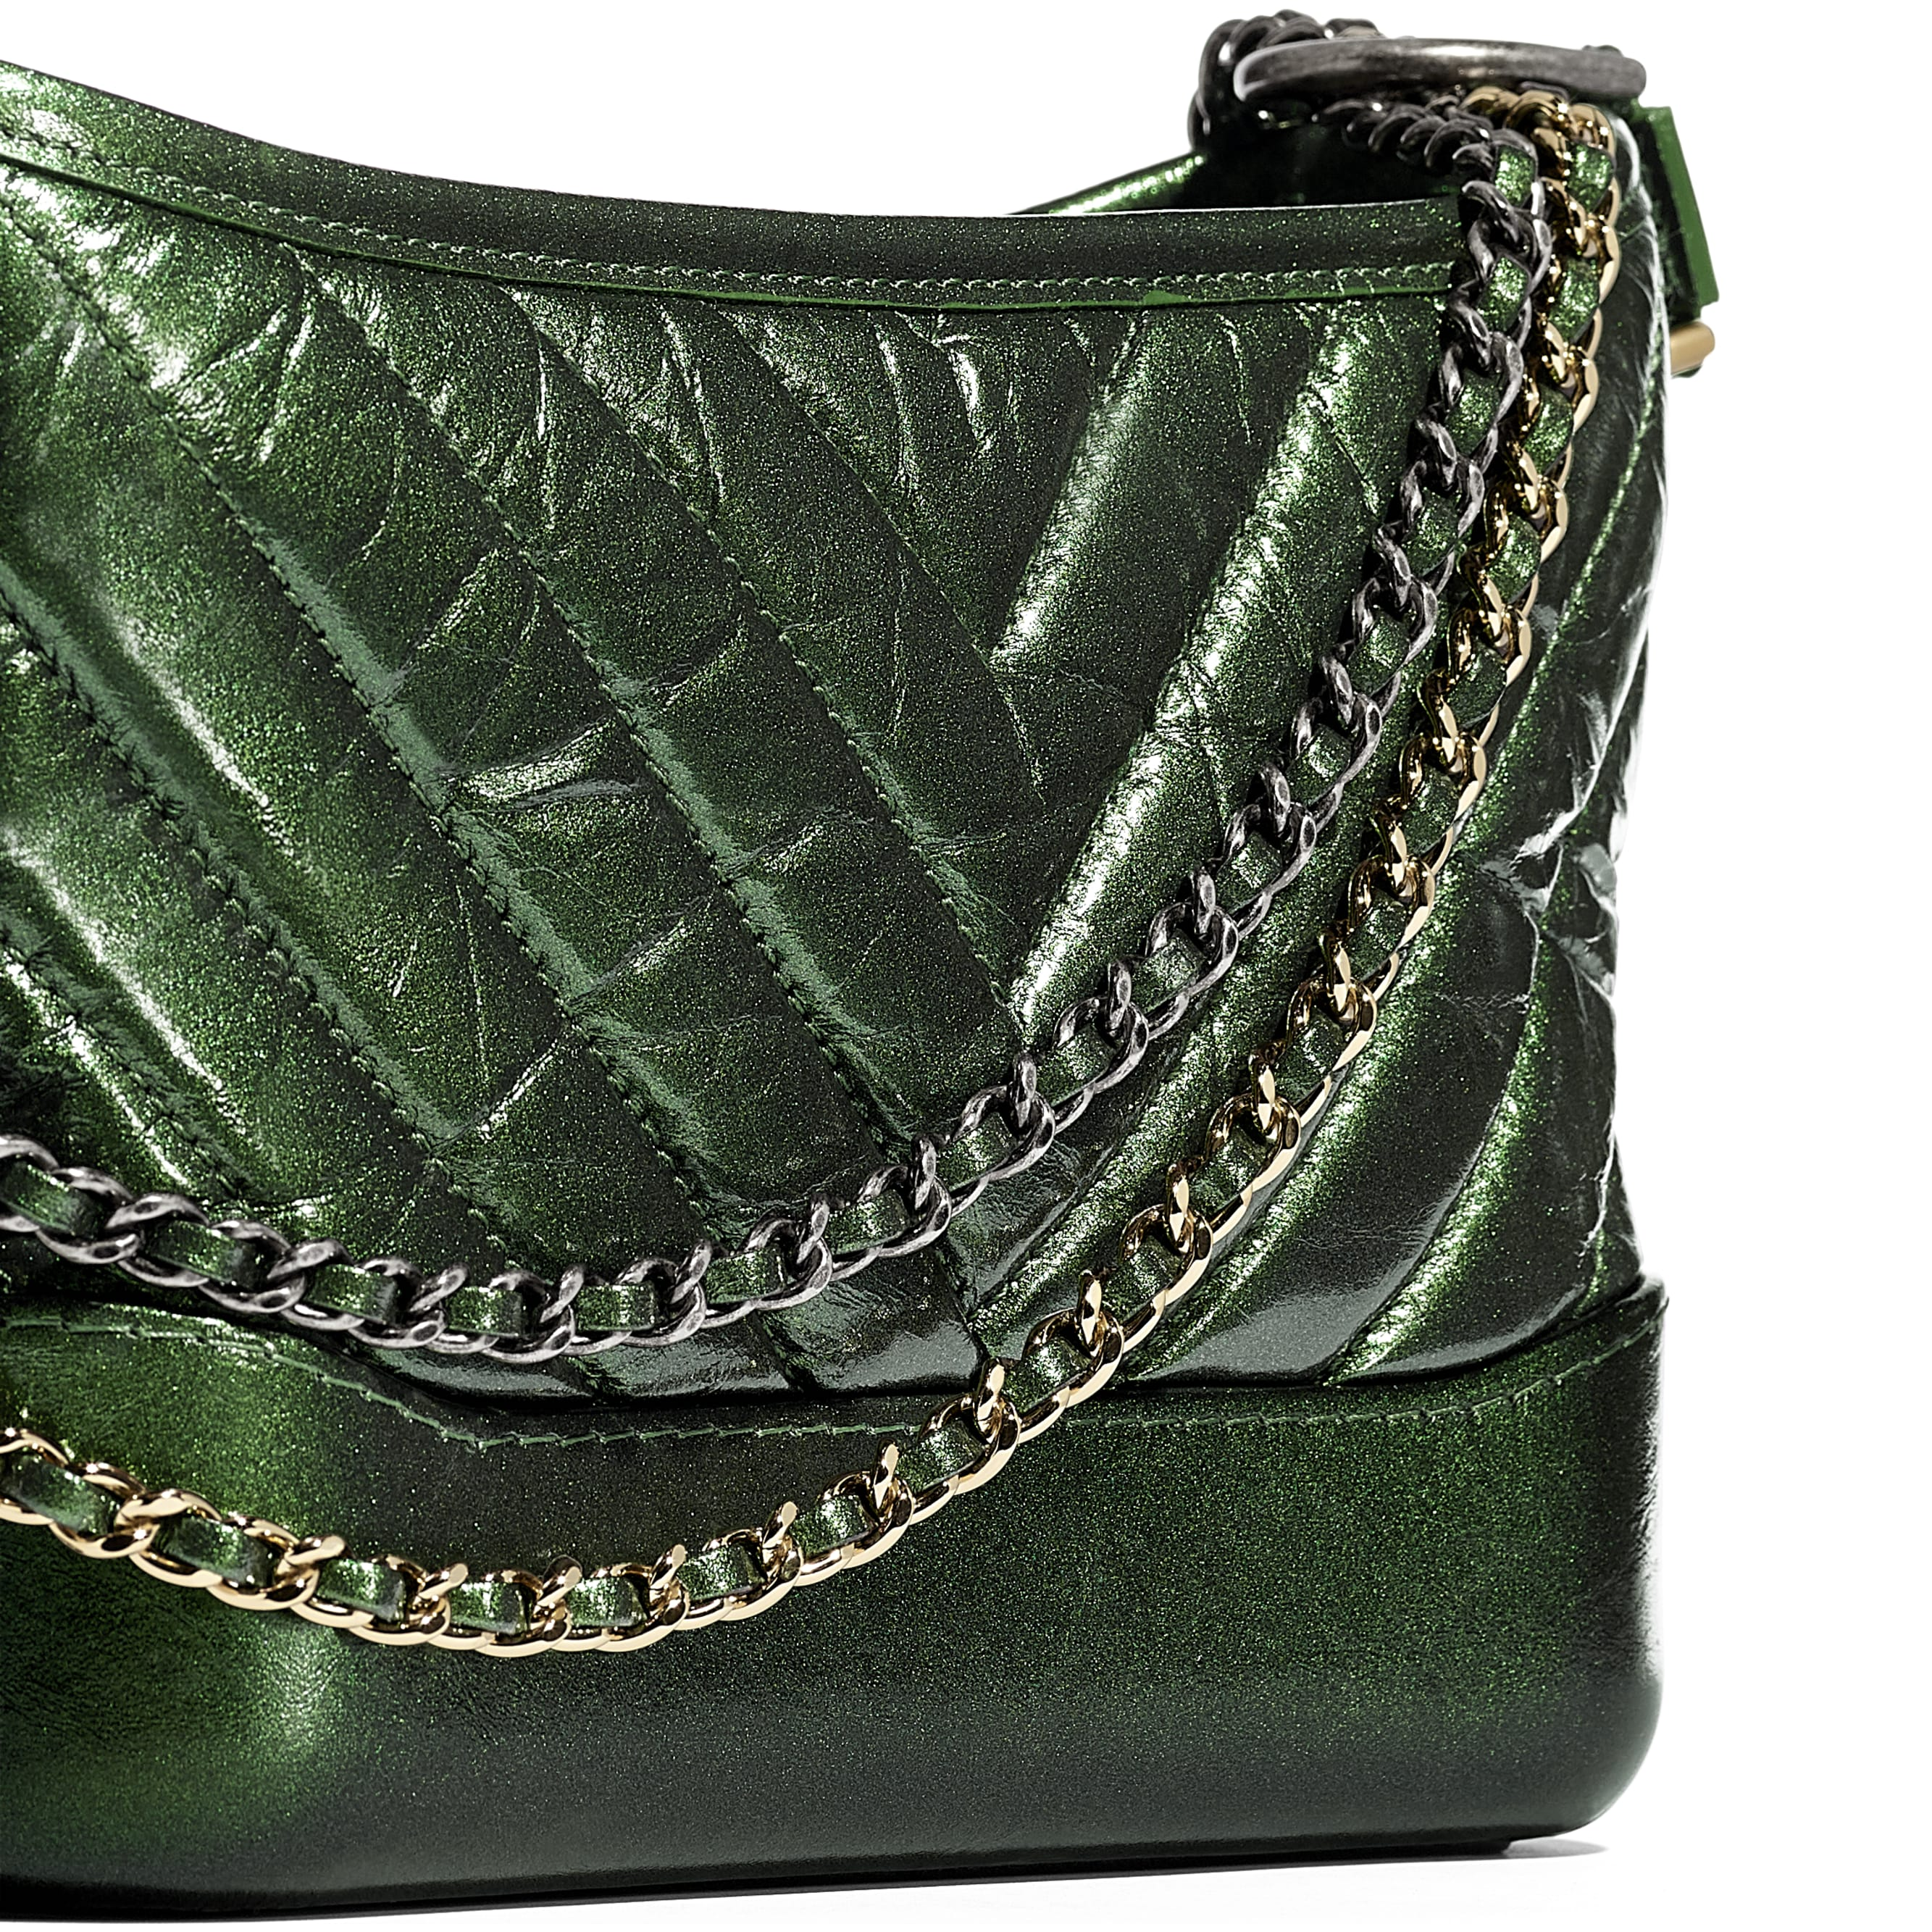 CHANEL'S GABRIELLE Small Hobo Bag - Green - Aged Calfskin, Silver-Tone & Gold-Tone Metal - CHANEL - Extra view - see standard sized version